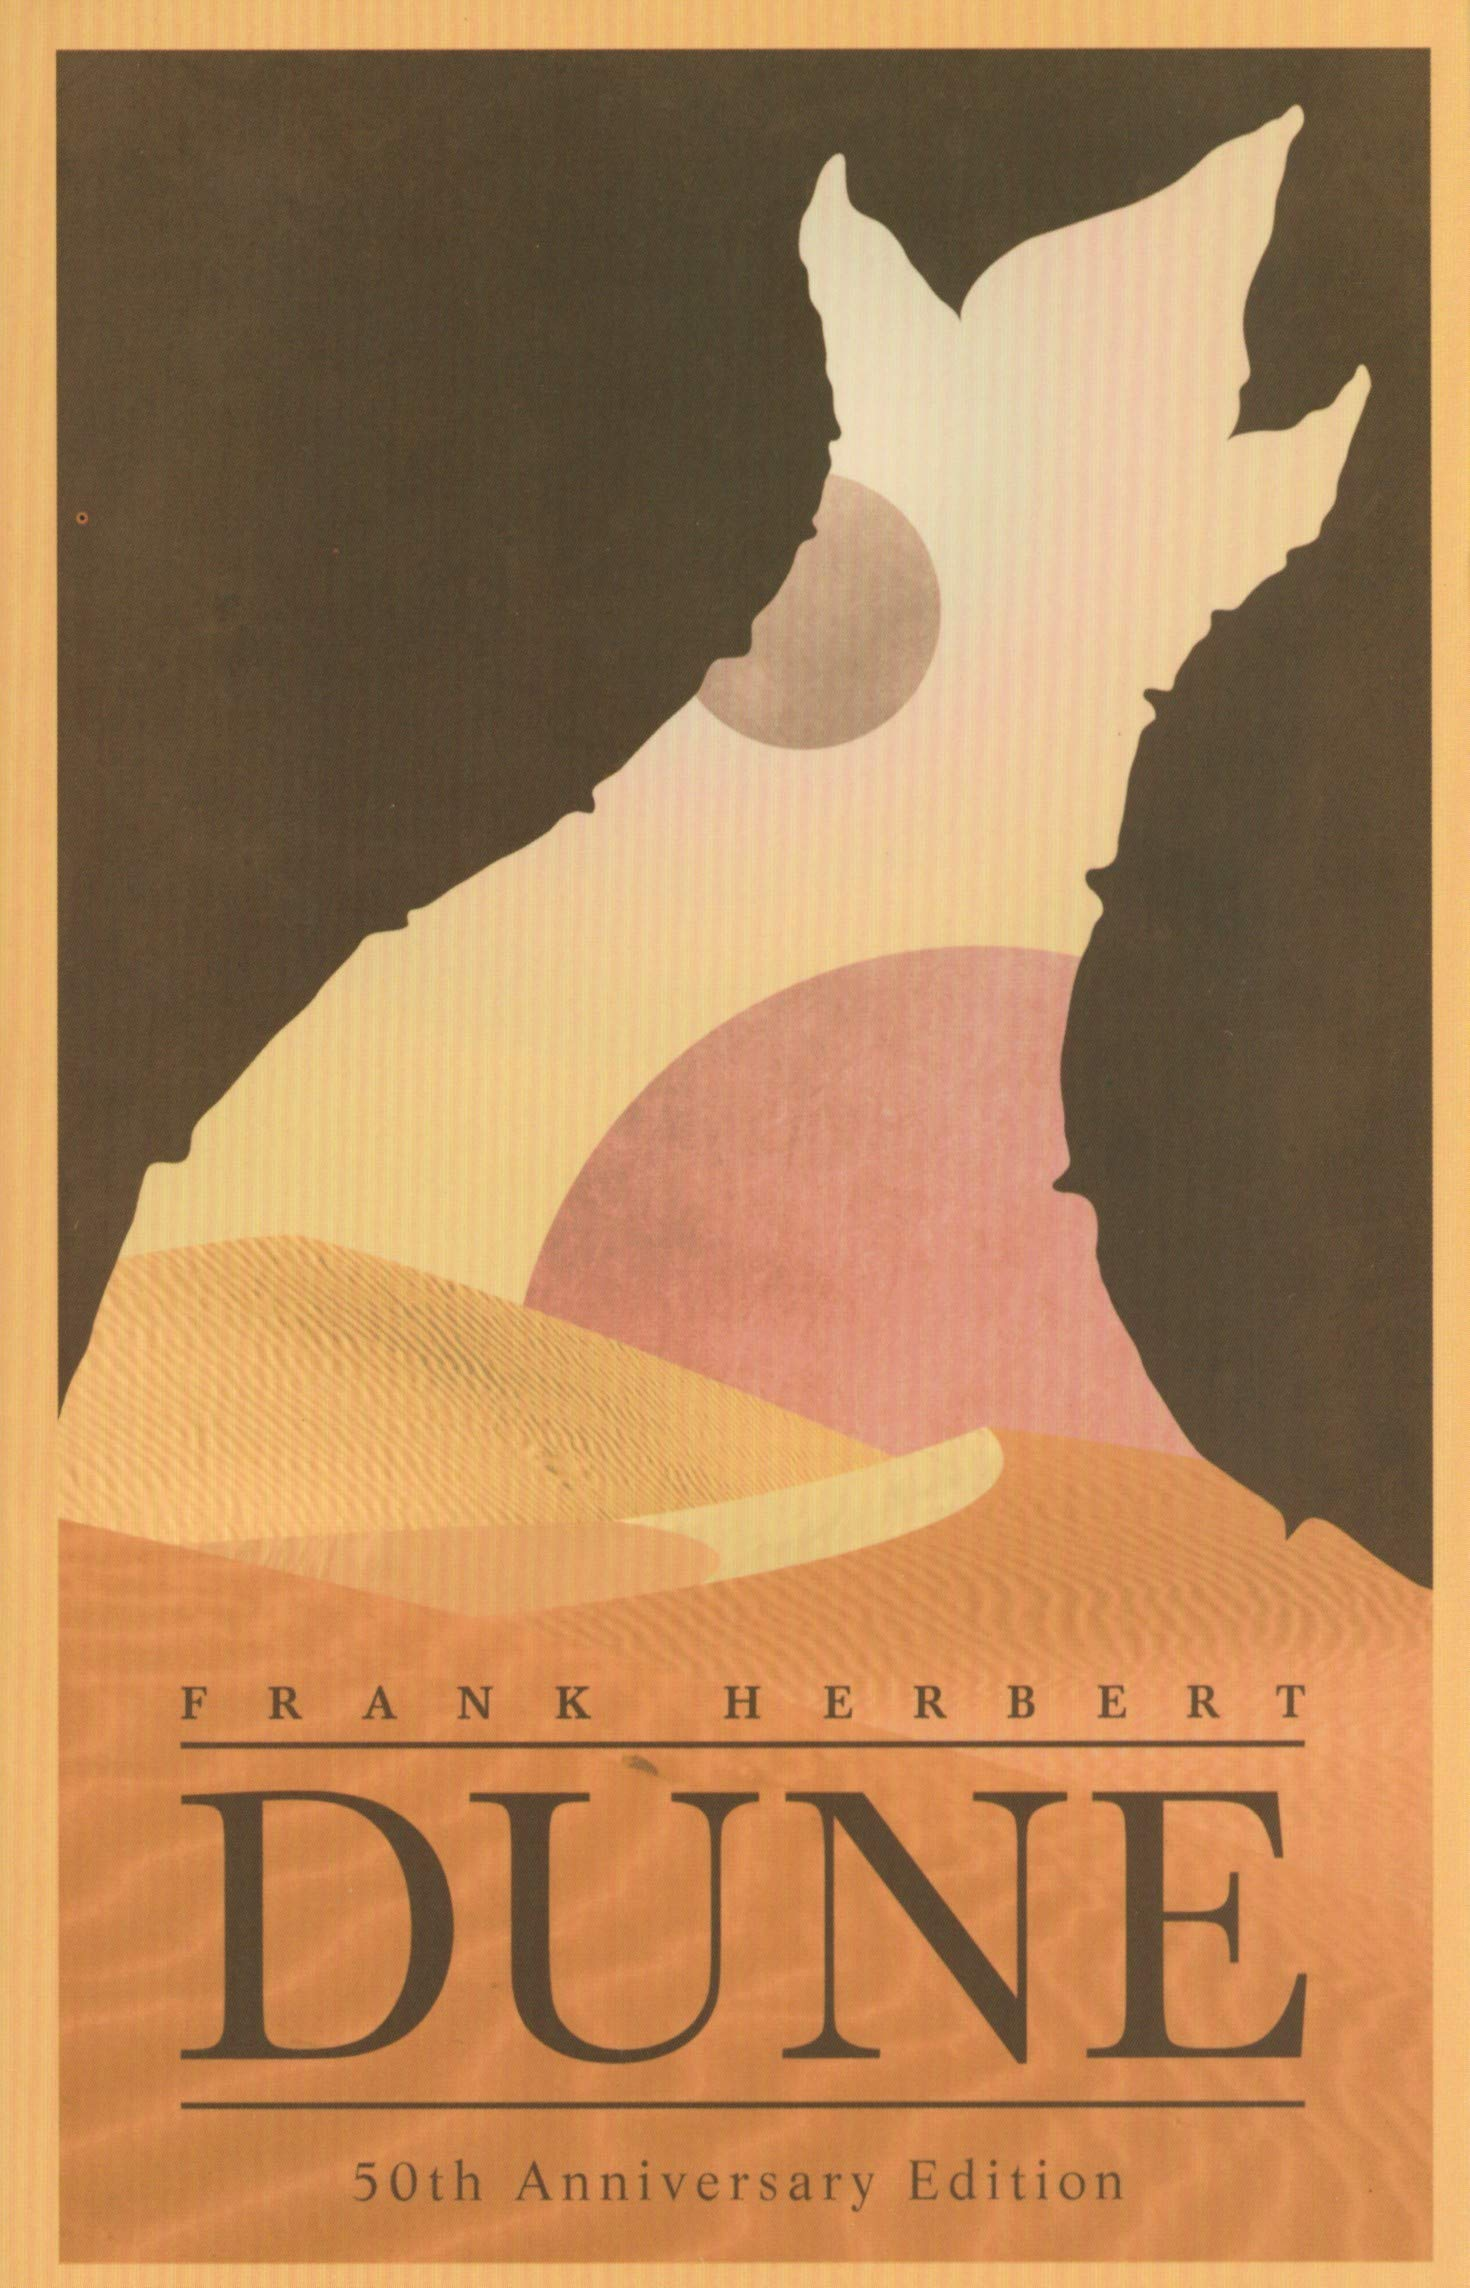 Dune: Frank Herbert: 9780340960196: Amazon.com: Books